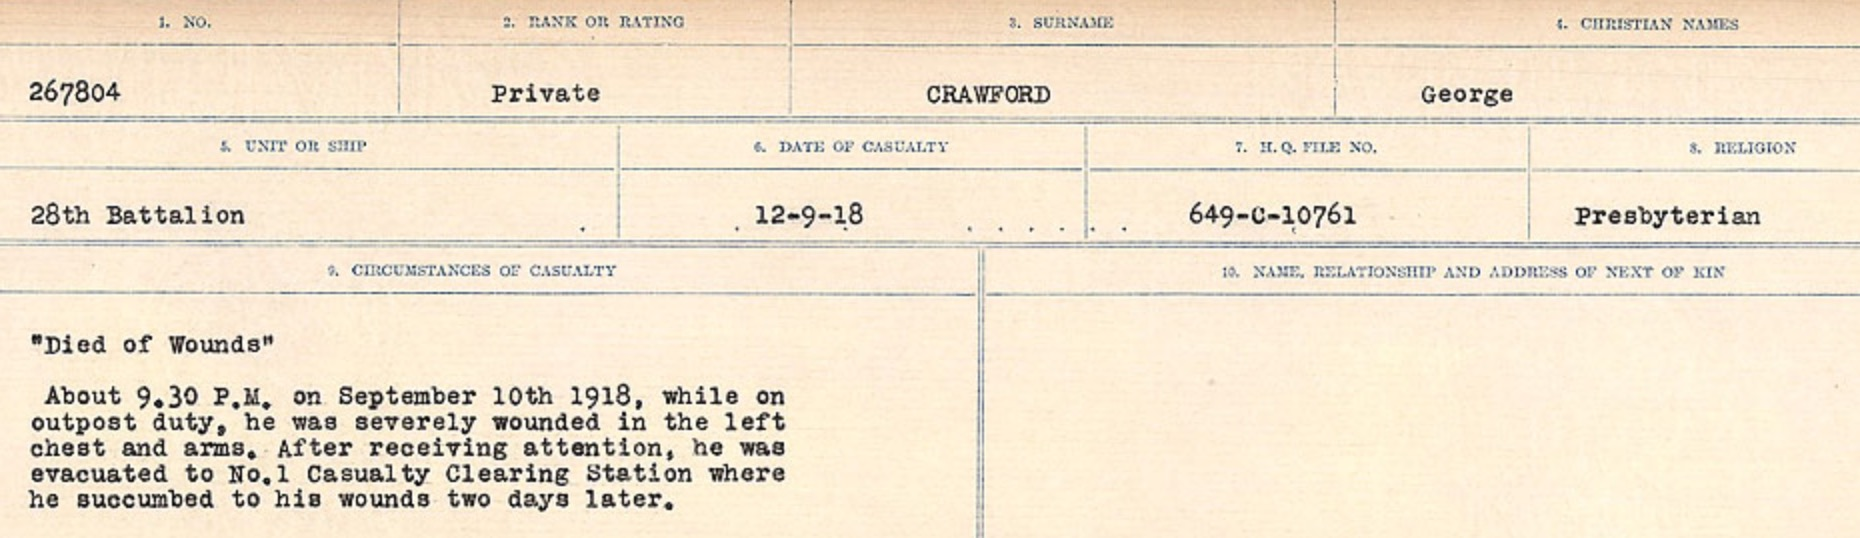 Circumstances of death registers– Source: Library and Archives Canada. CIRCUMSTANCES OF DEATH REGISTERS, FIRST WORLD WAR Surnames: CRABB TO CROSSLAND Microform Sequence 24; Volume Number 31829_B016733. Reference RG150, 1992-93/314, 168. Page 335 of 788.